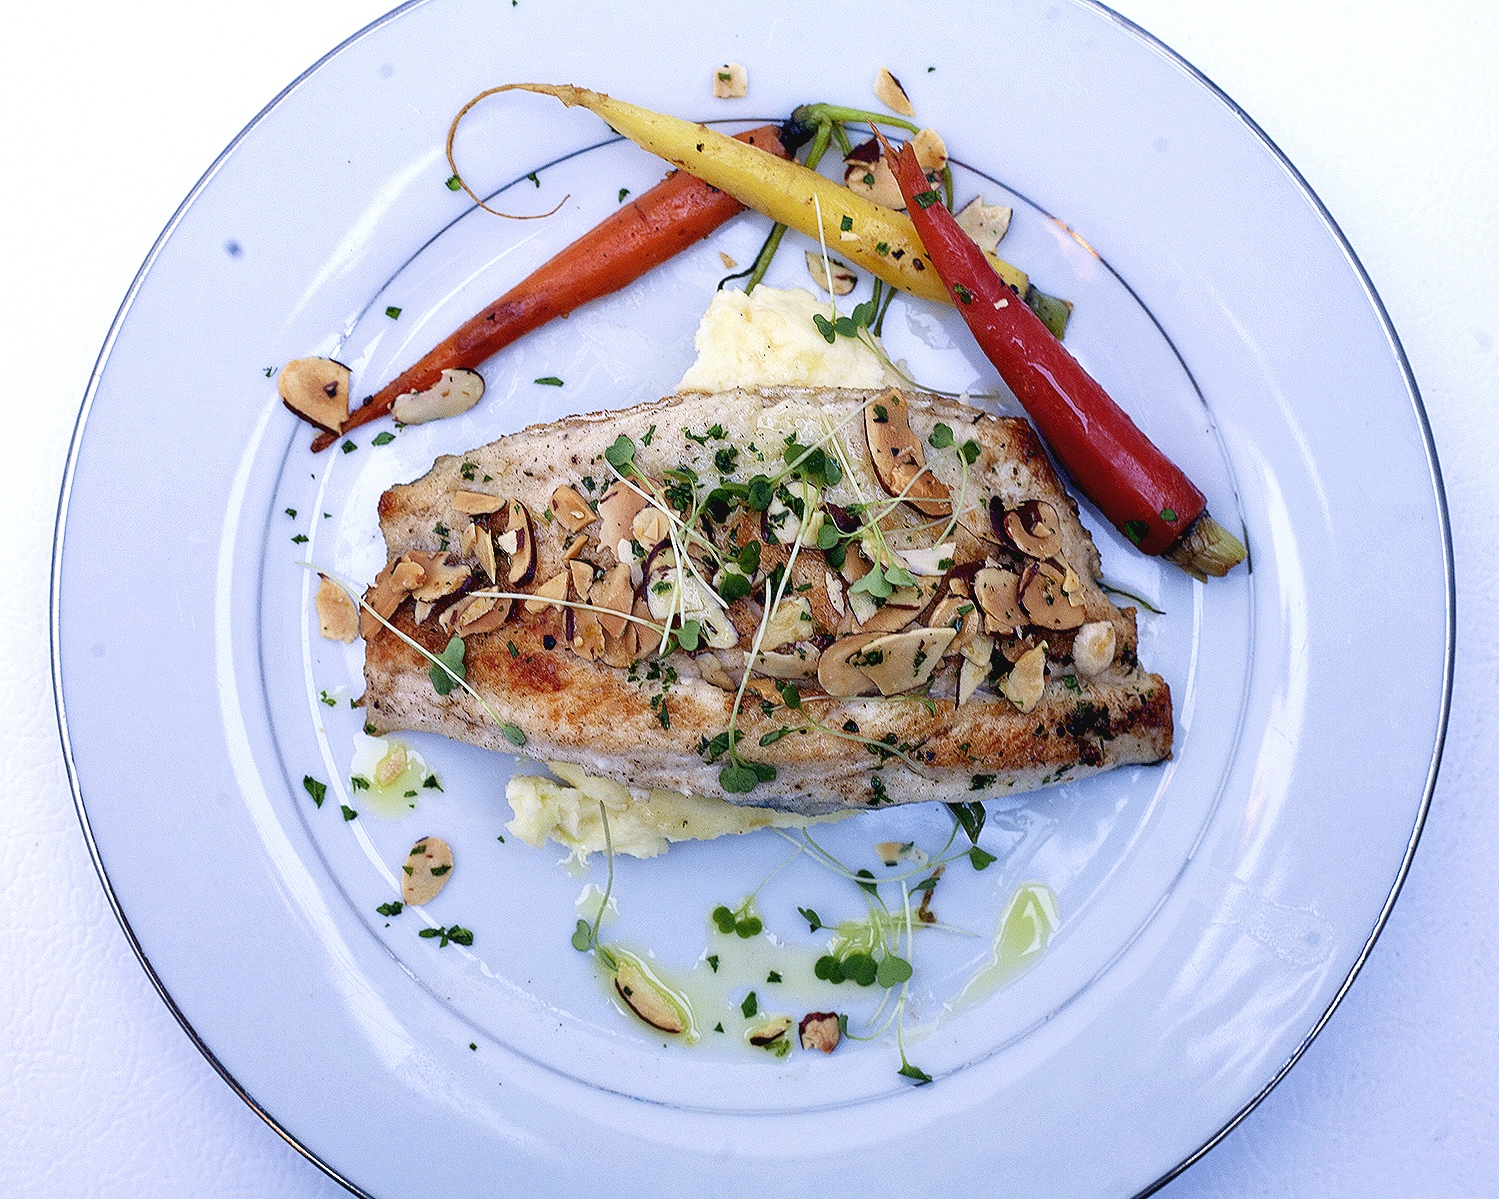 Almond crusted sea bass with roasted heirloom carrots